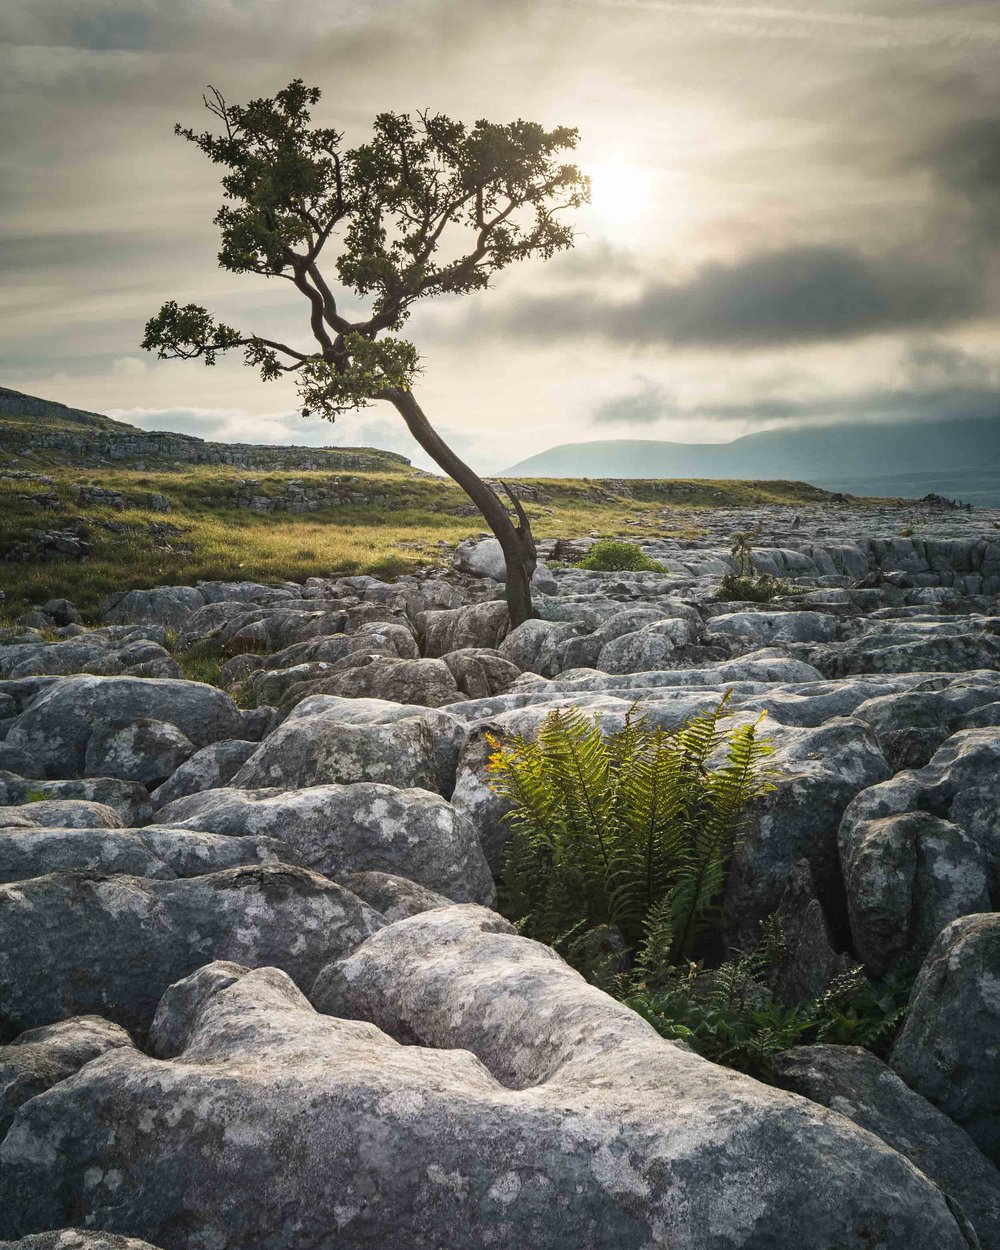 twistleton scar yorkshire dales national park north yorkshire ingleton limestone pavement twisted lone tree at sunrise dark moody clouds landscape.jpg